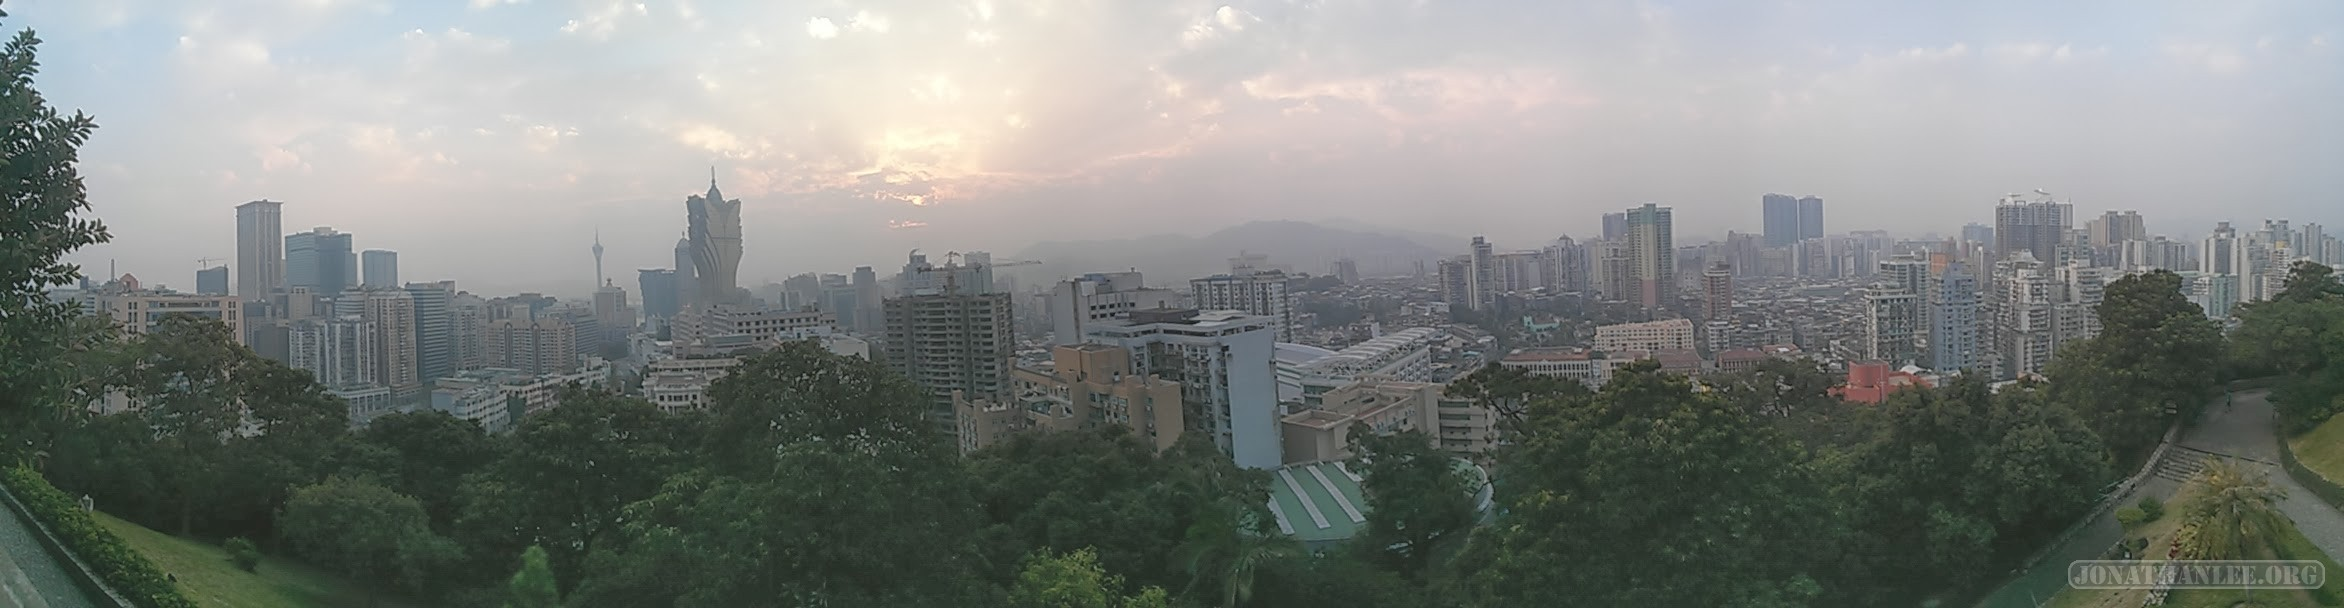 Macau - panorama view 1